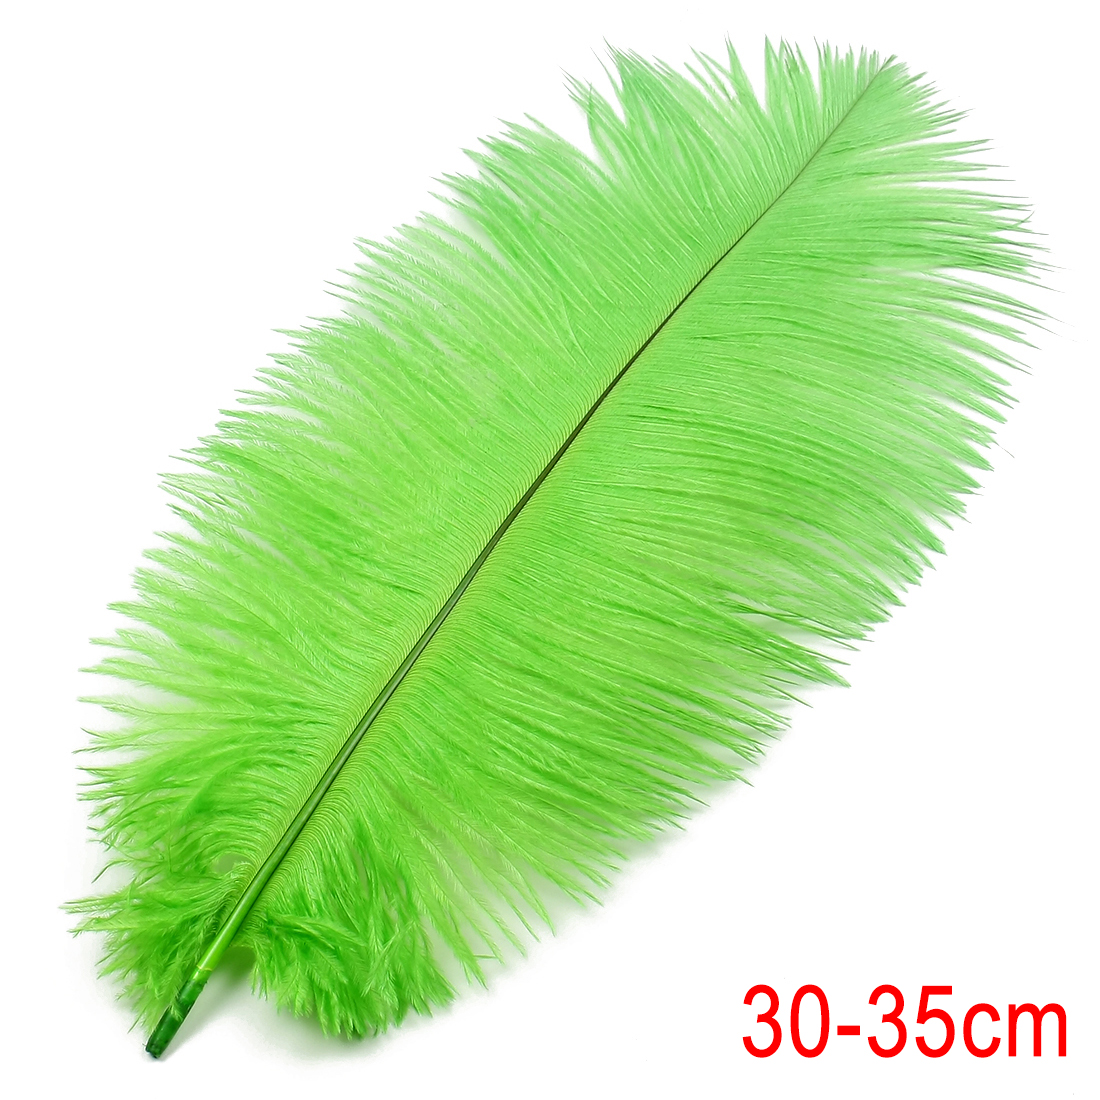 12-14inch / 30-35cm Ostrich Feather for Wedding Party Decoration Green